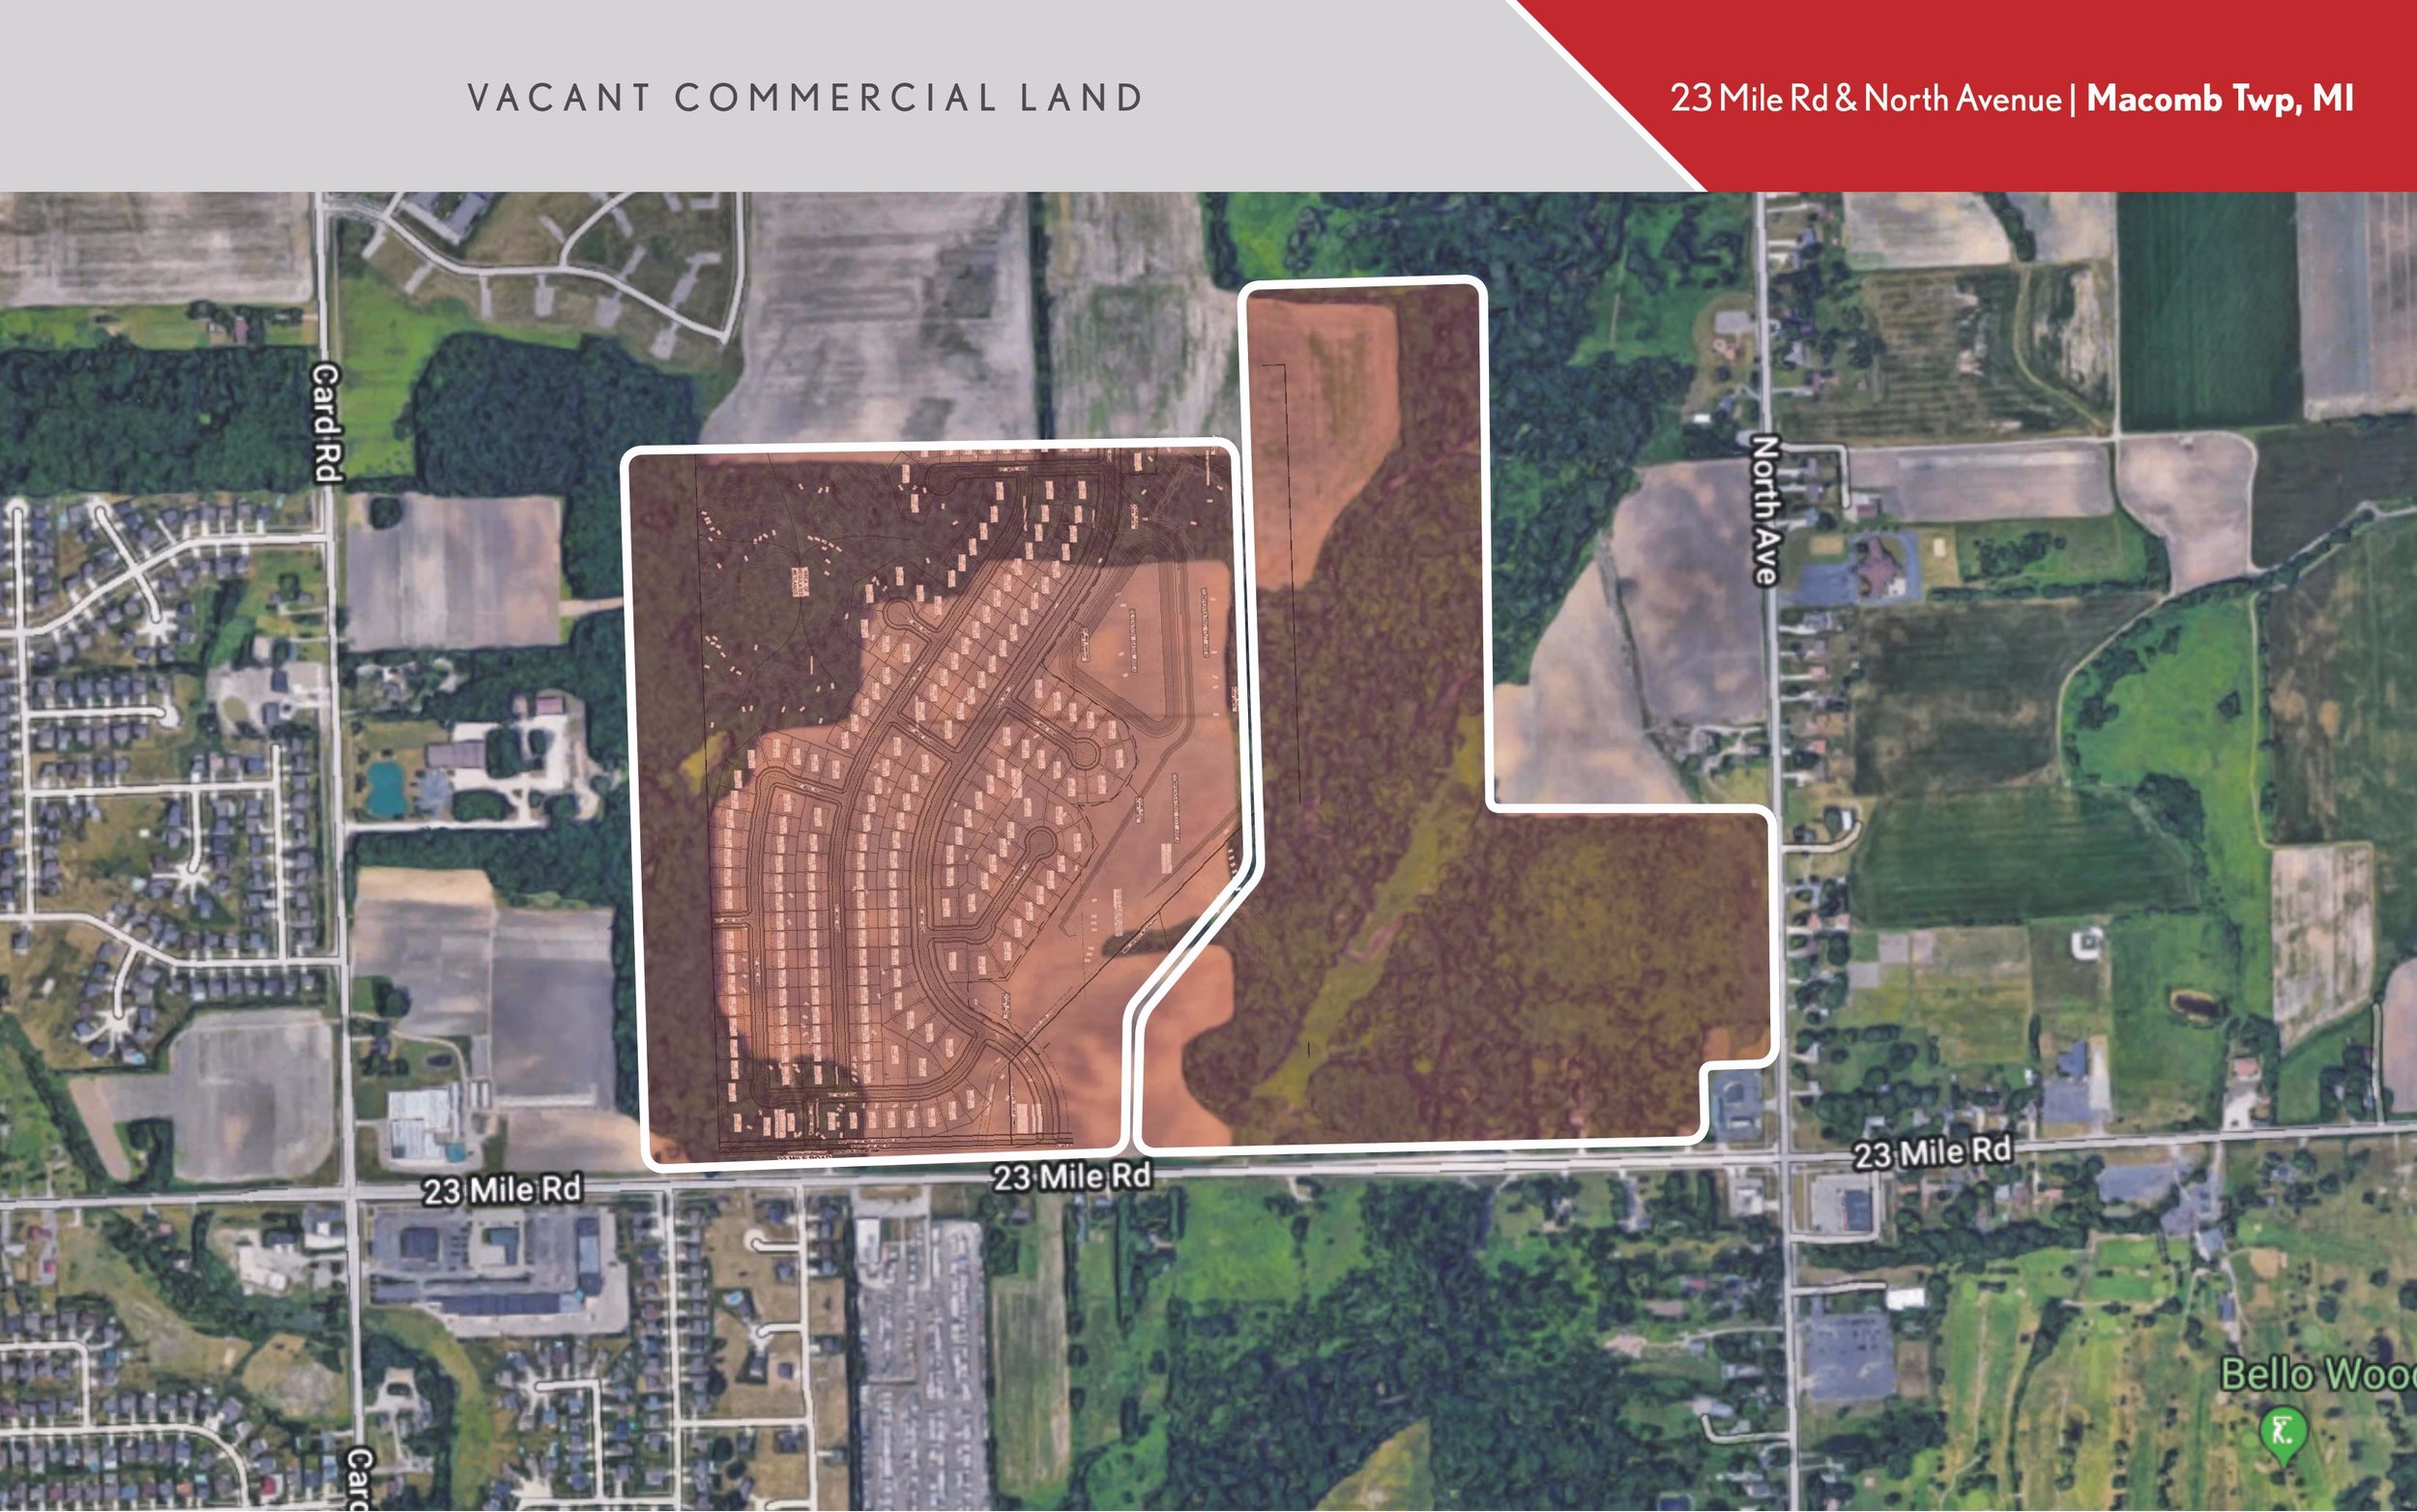 Copy of Vacant Commercial Land | Macomb Twp, MI